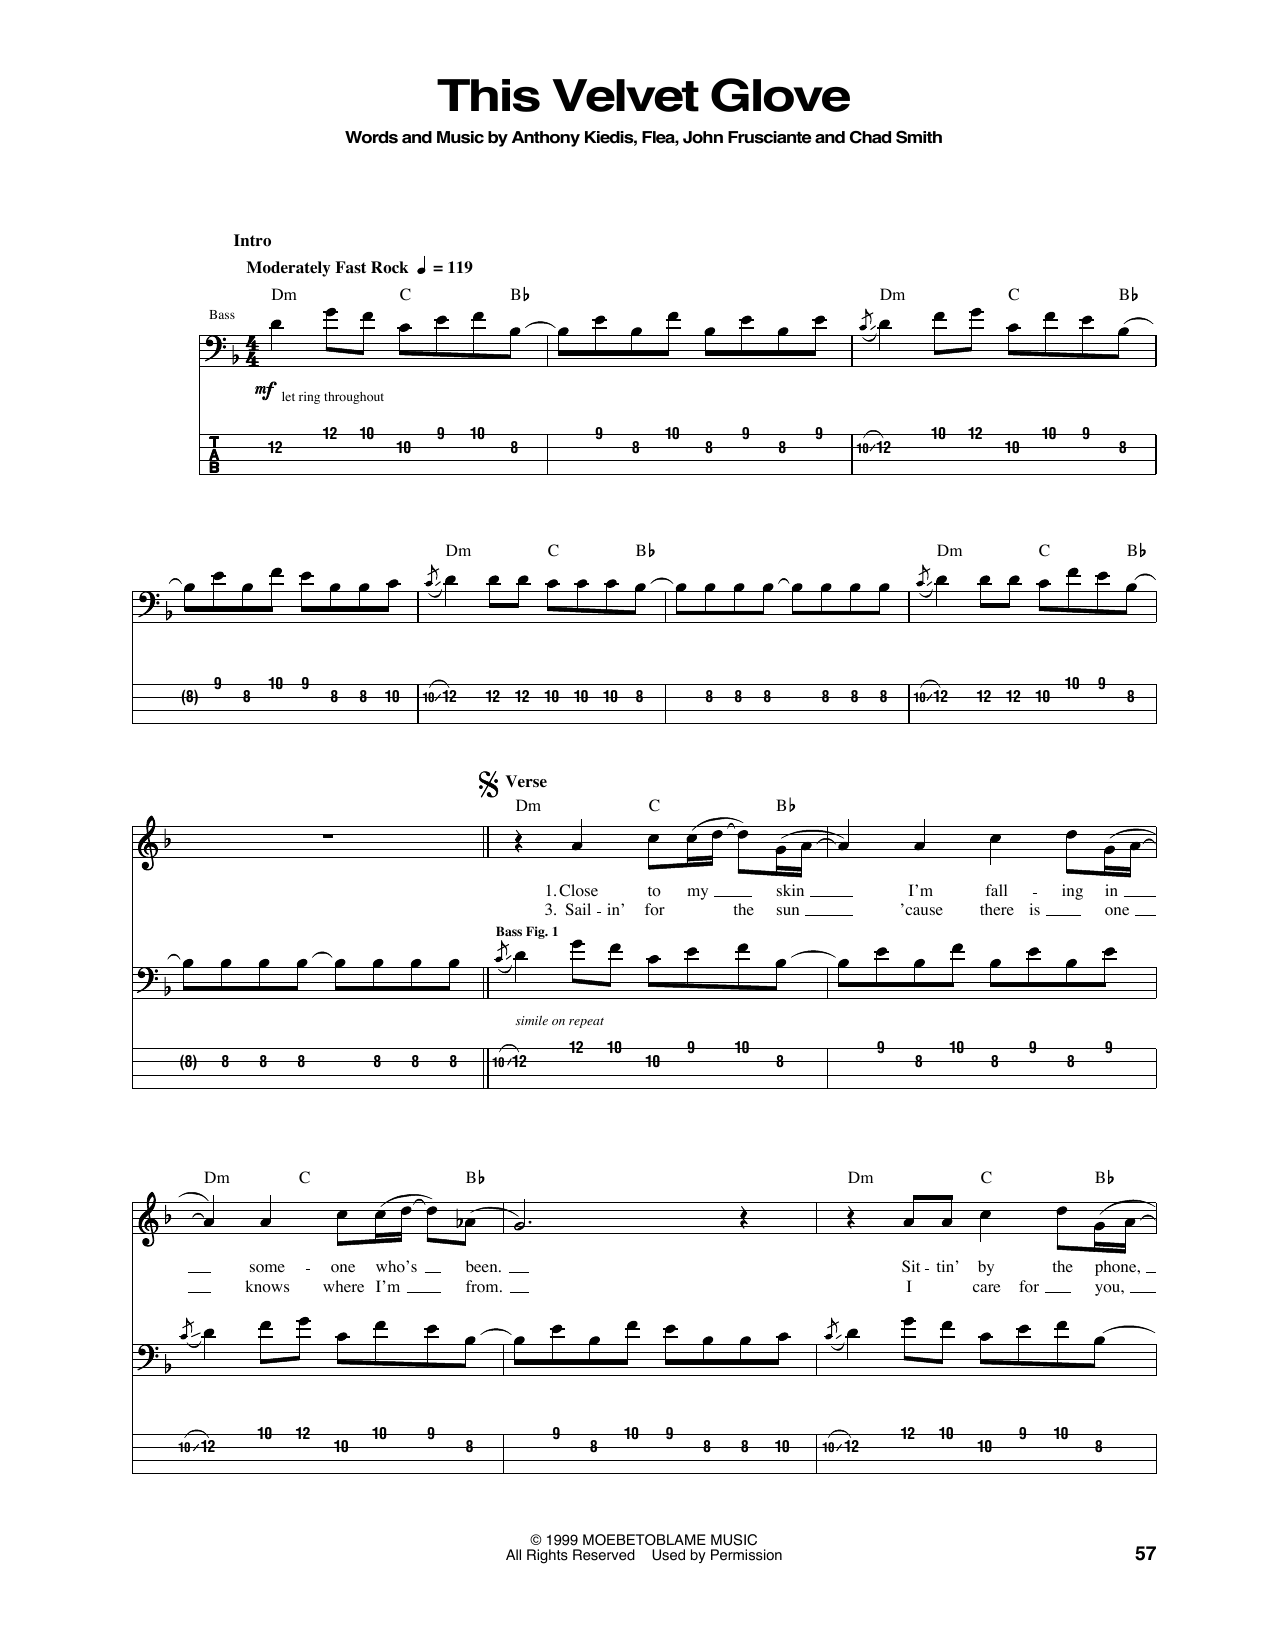 Tablature guitare This Velvet Glove de Red Hot Chili Peppers - Tablature Basse